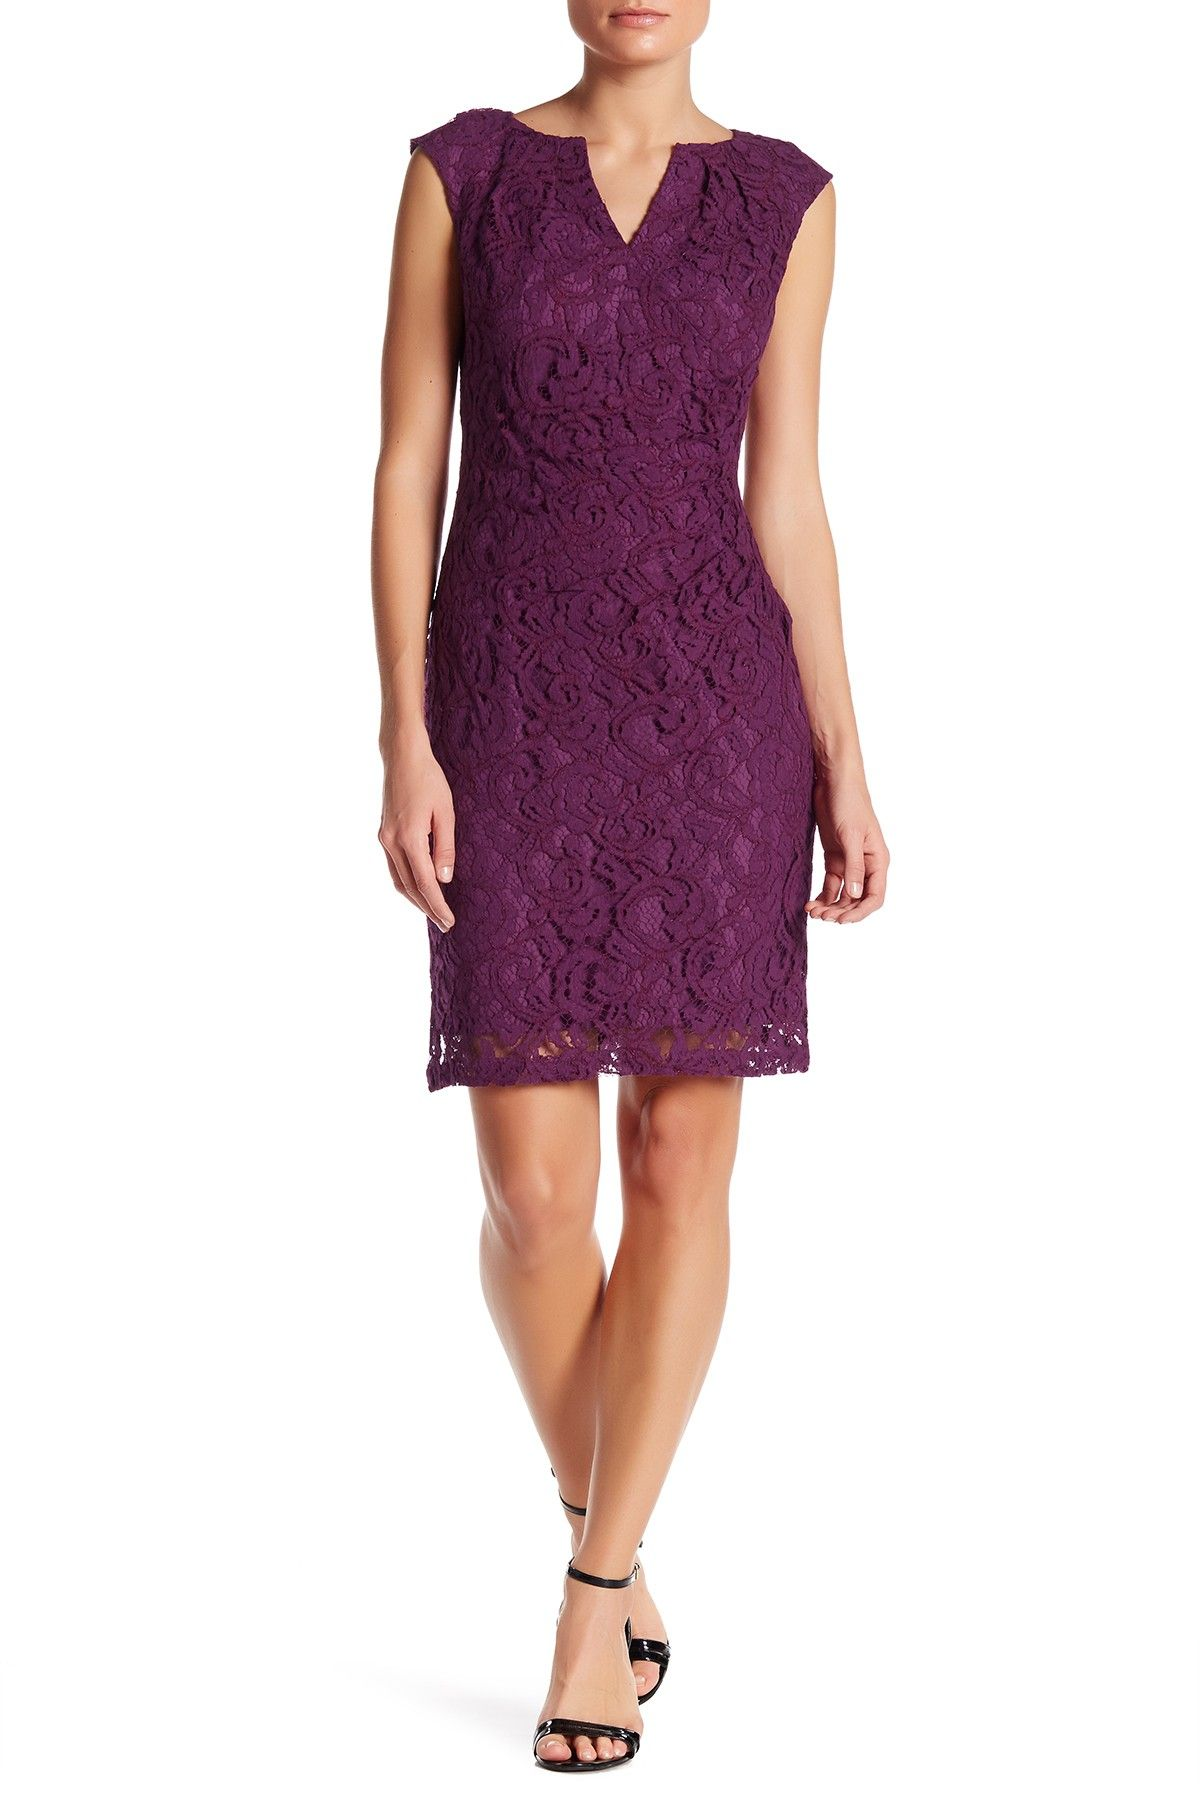 Adrianna Papell Cap Sleeve Split Neck Scroll Lace Dress Missy